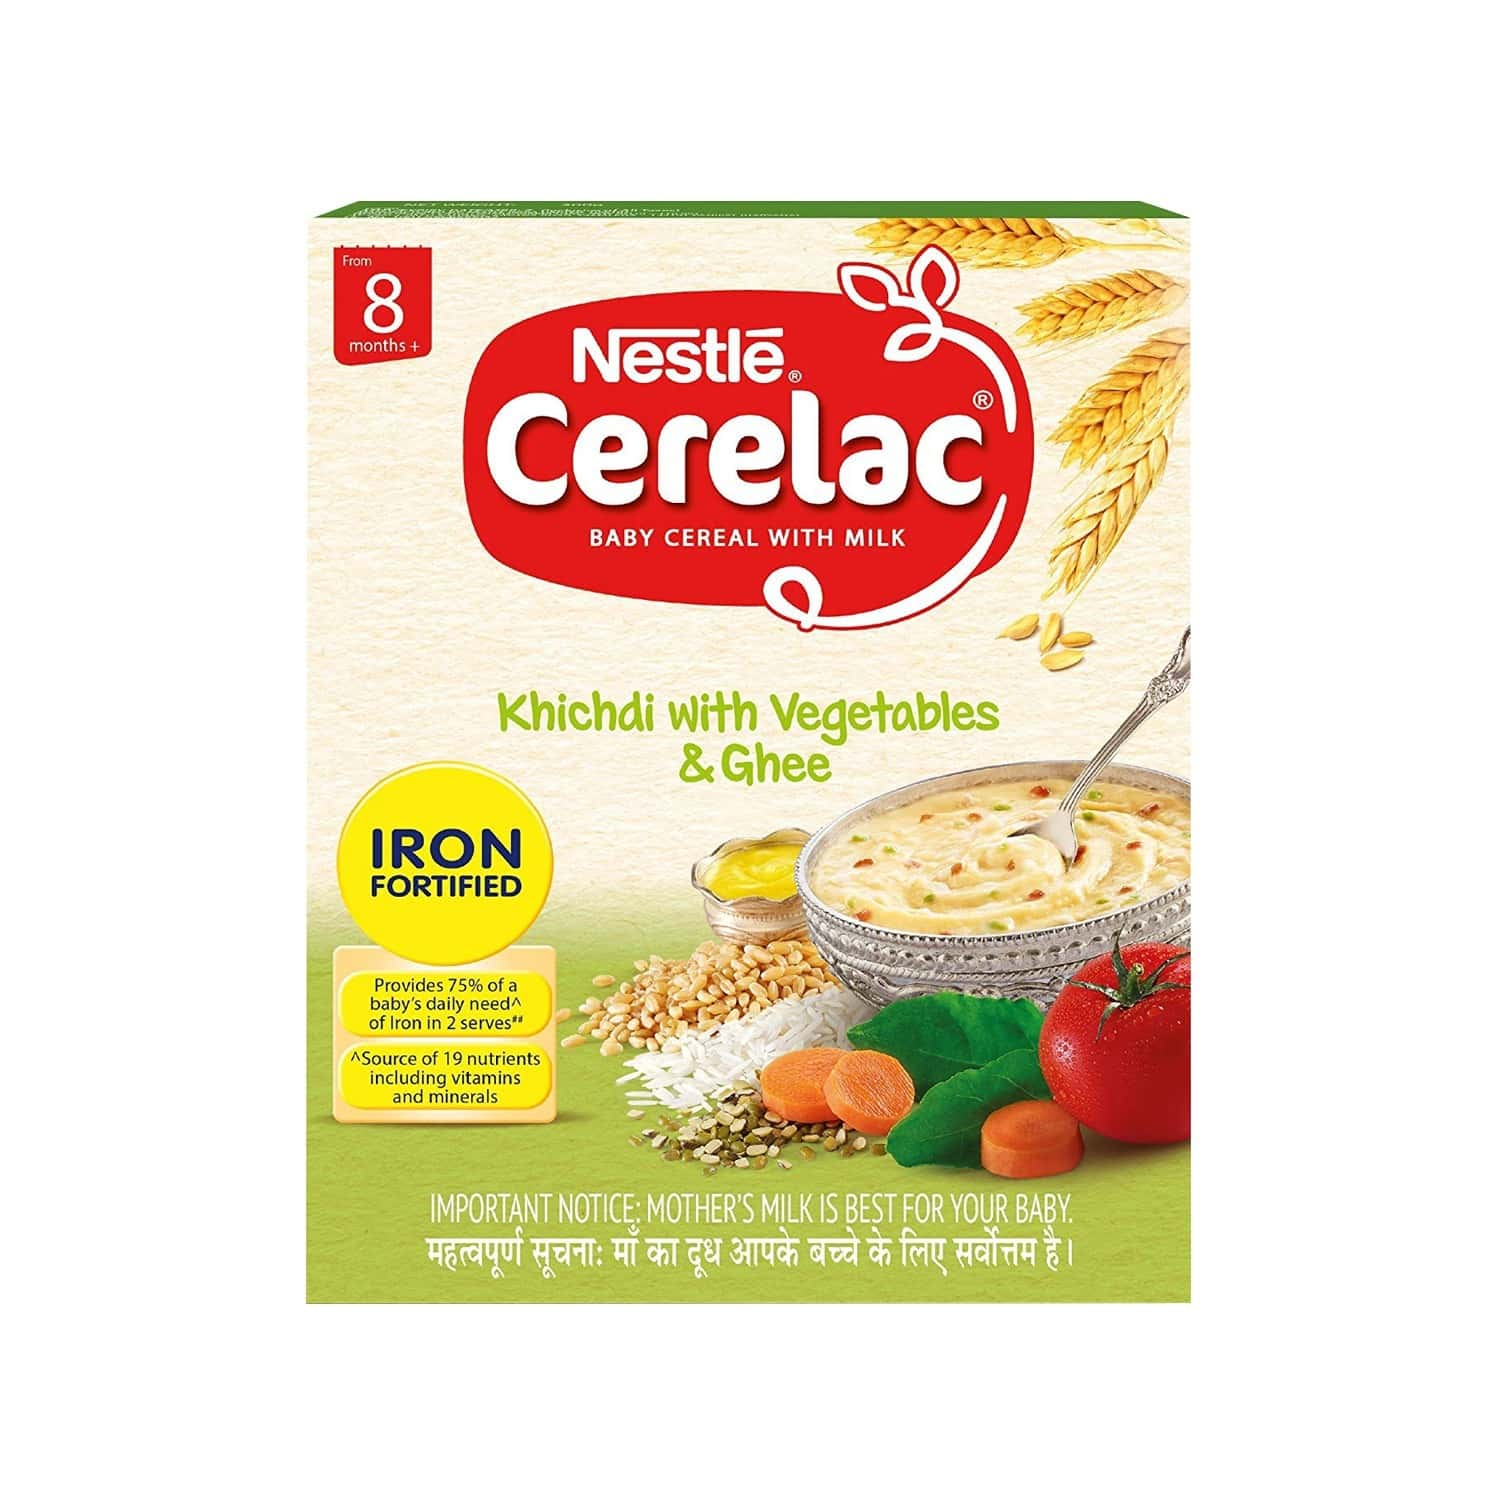 Nestle Cerelac Baby Cereal With Milk Khichdi With Vegetables & Ghee Baby Food (from 8 Months) Box Of 300 G